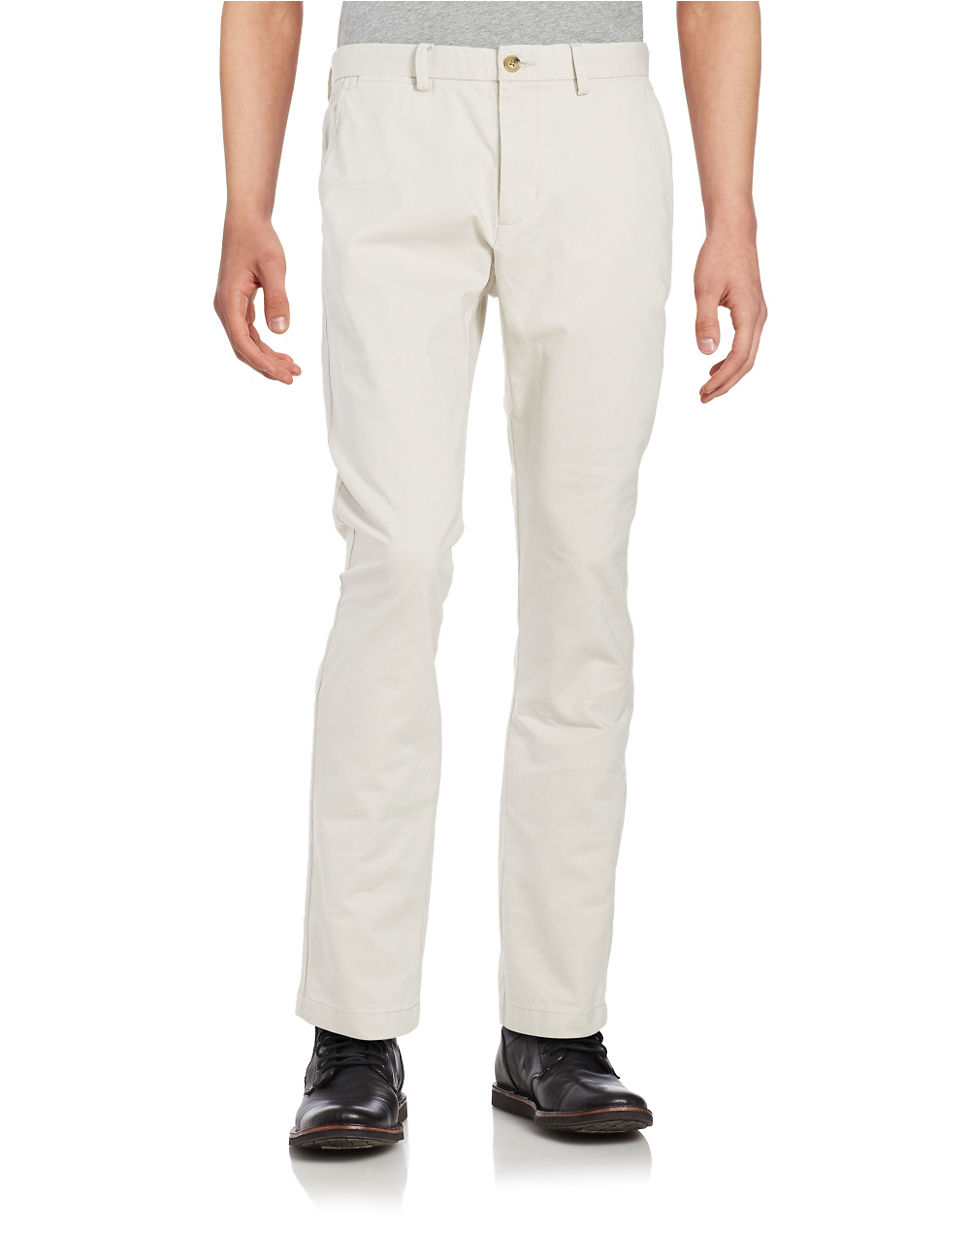 Shop Online for Mens Trousers on Tata CLiQ Getting a statement casual look is easier than ever if you have the appropriate apparel in your clothing collection. Trousers, being one such category that is a staple in the wardrobe of most men are effective in boosting your style quotient effortlessly.